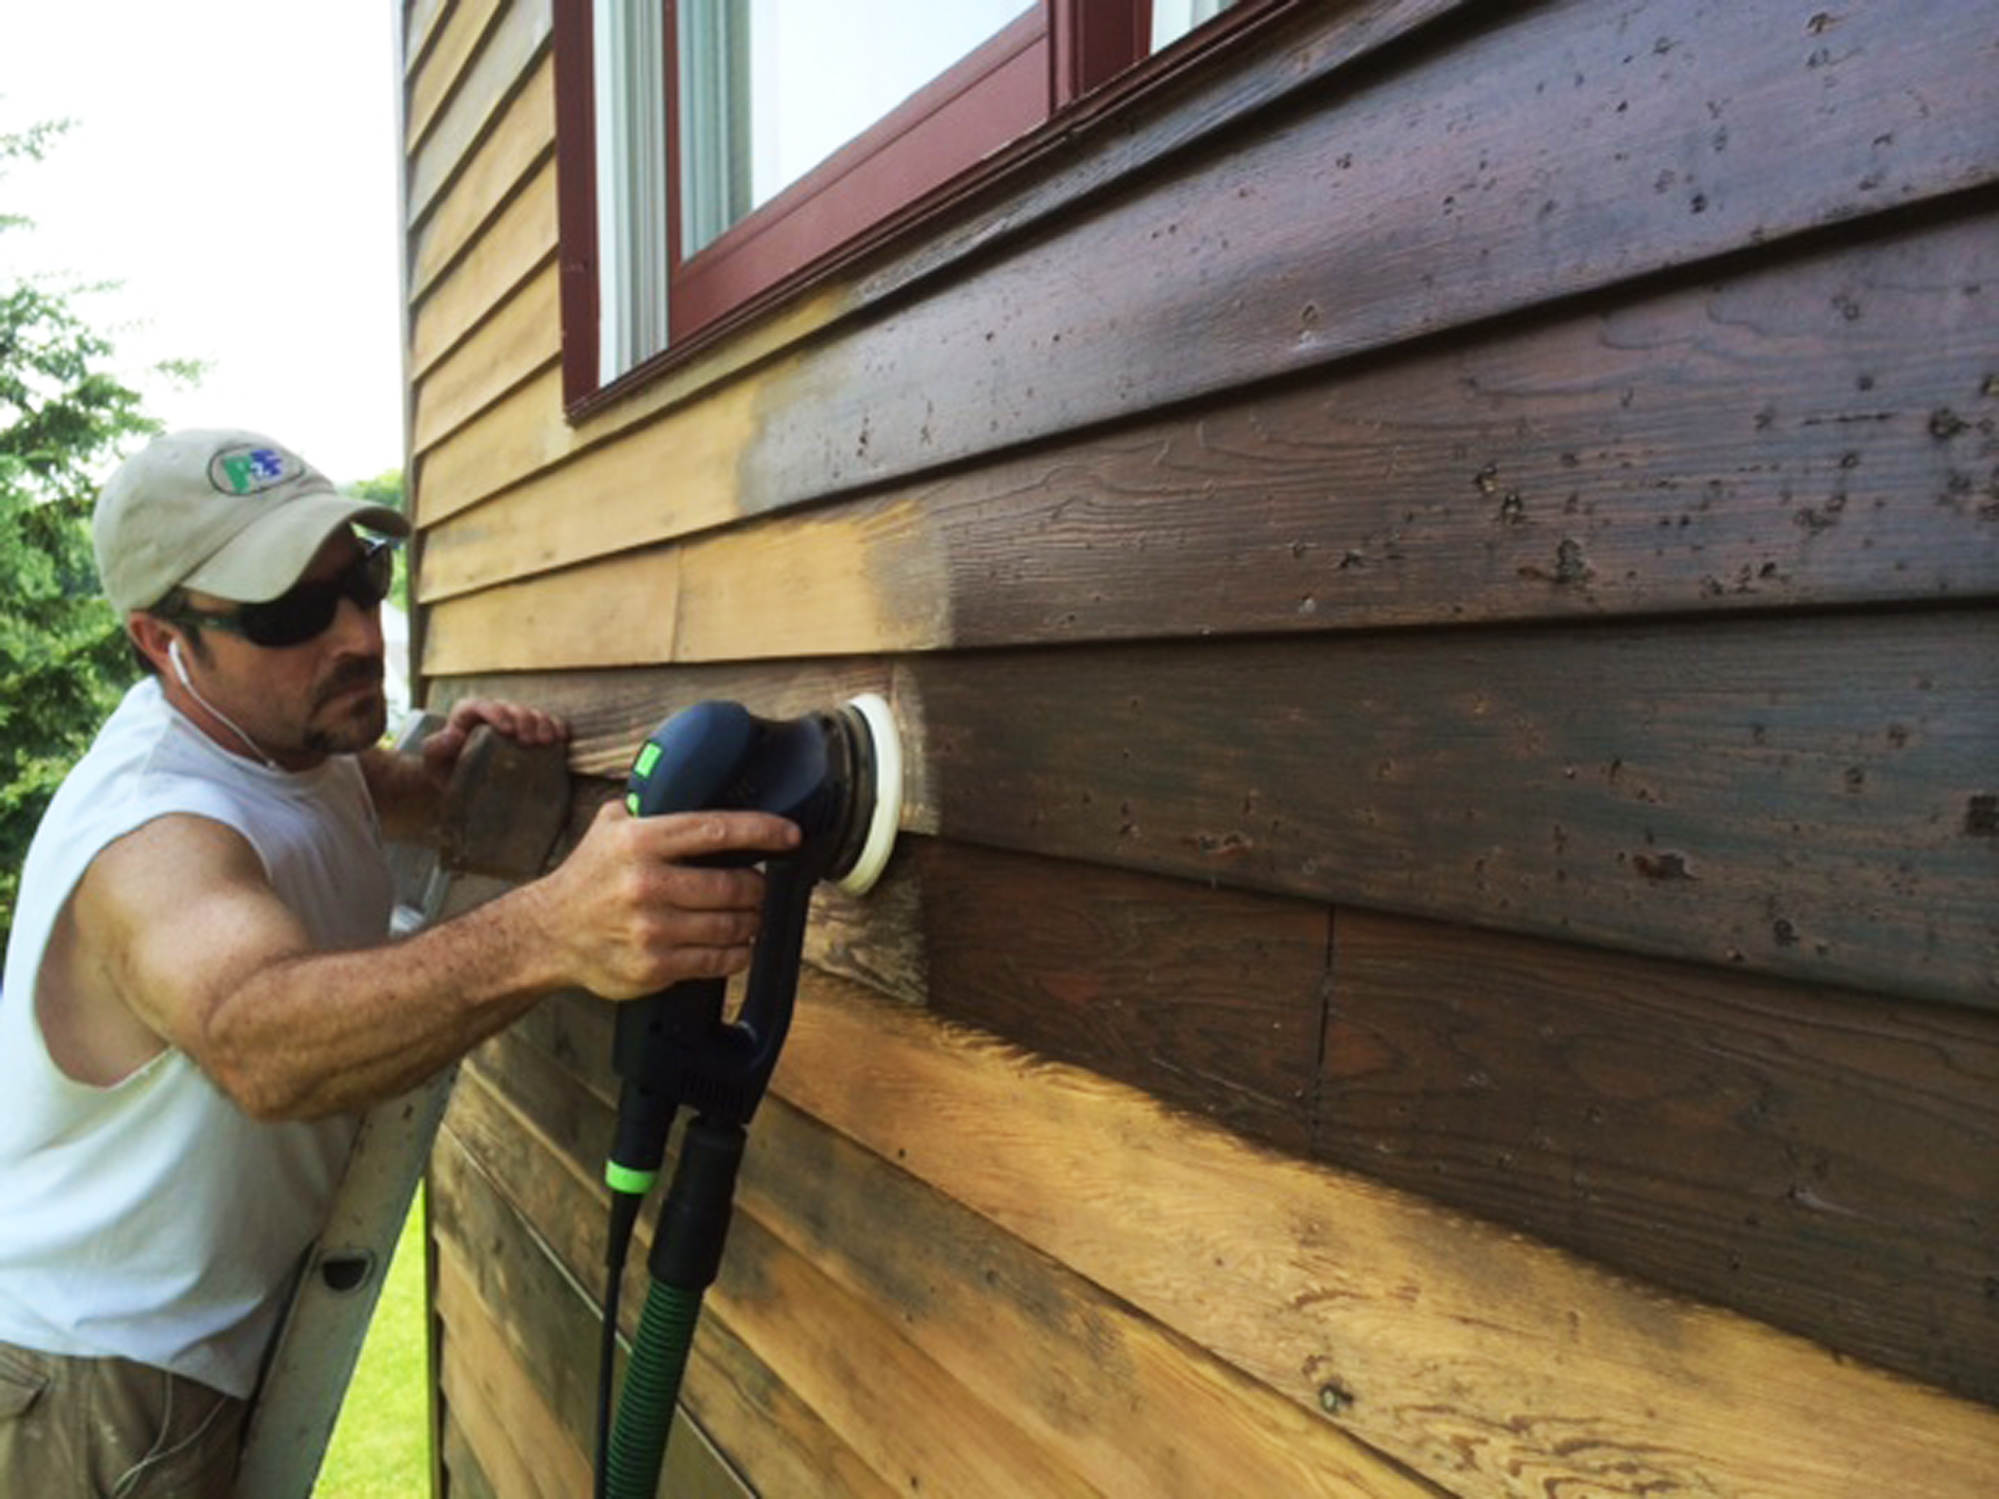 Refinishing A Hail Damaged Home Jlc Online Painting